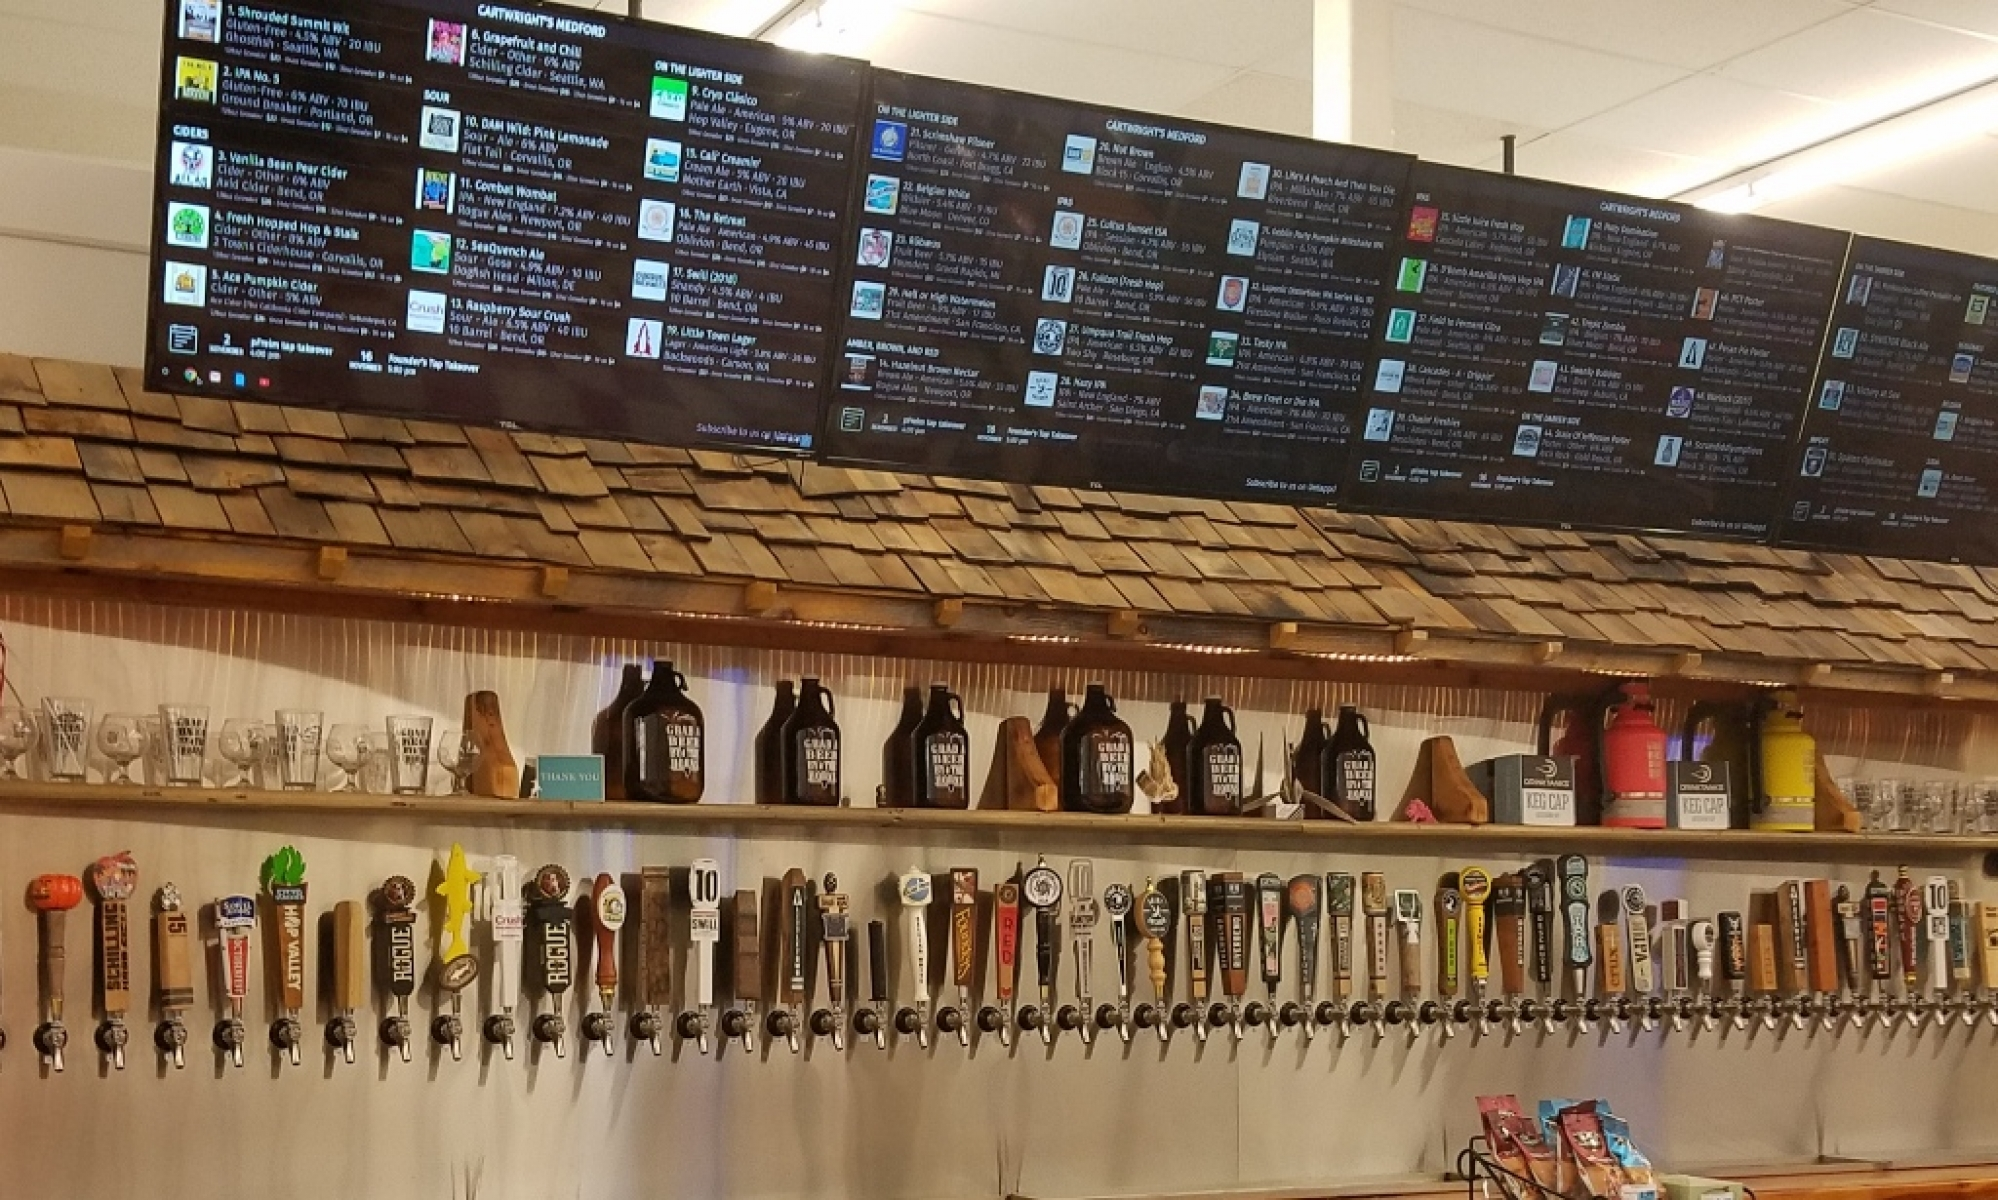 Most of the taps behind bar